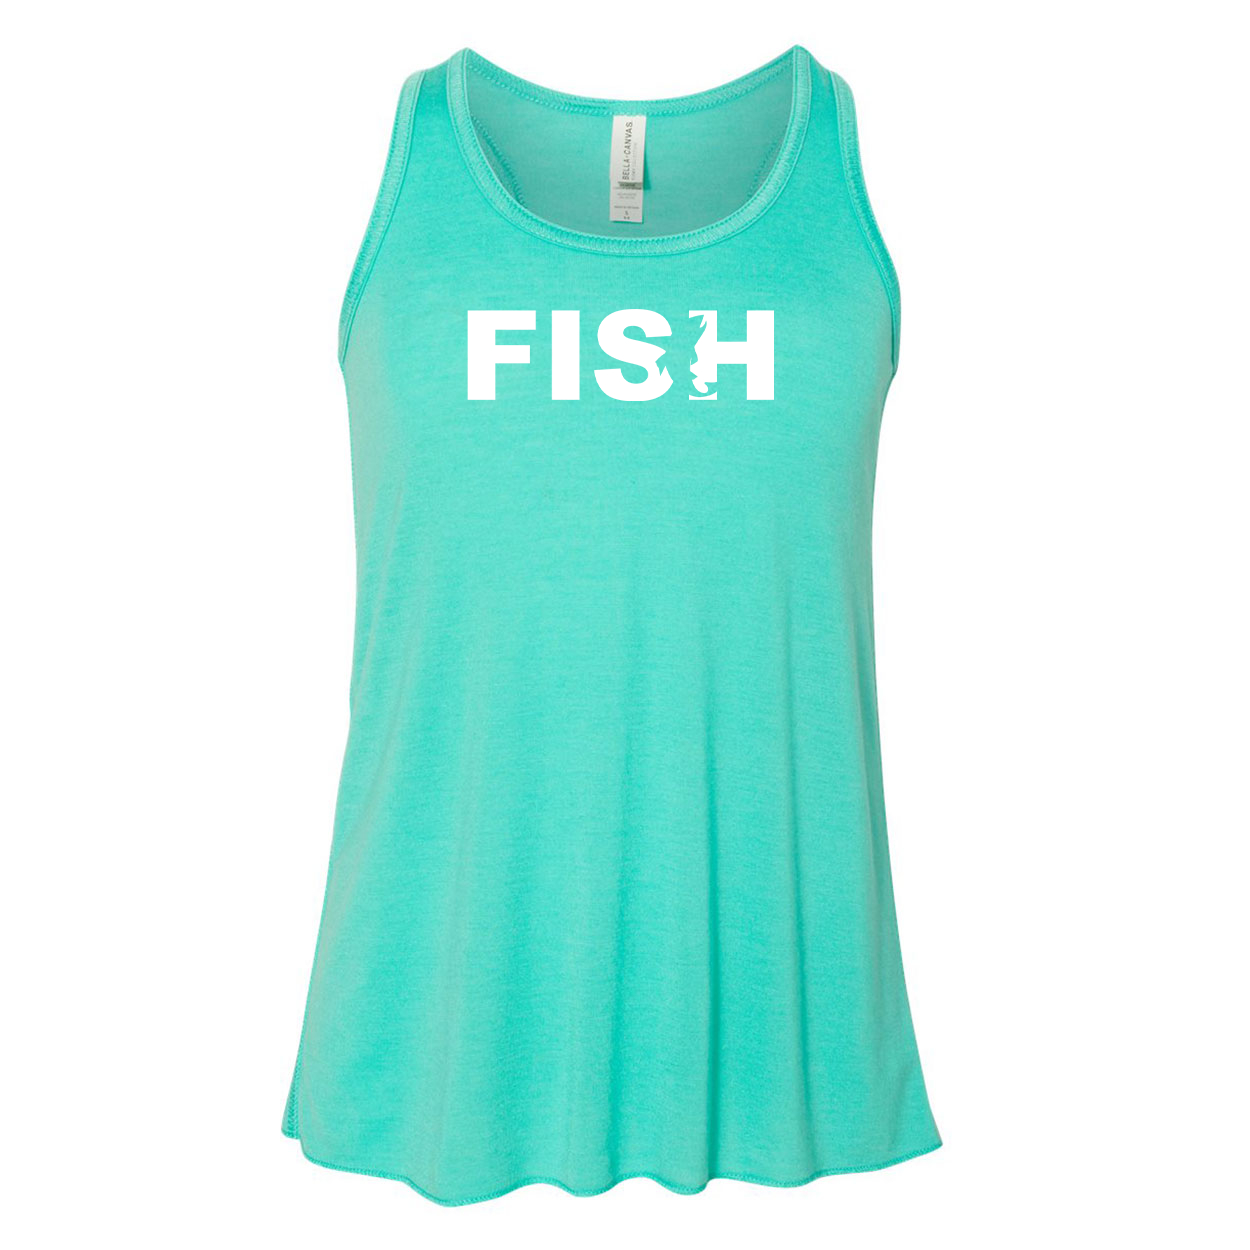 Fish Catch Logo Classic Youth Girls Flowy Racerback Tank Top Teal (White Logo)